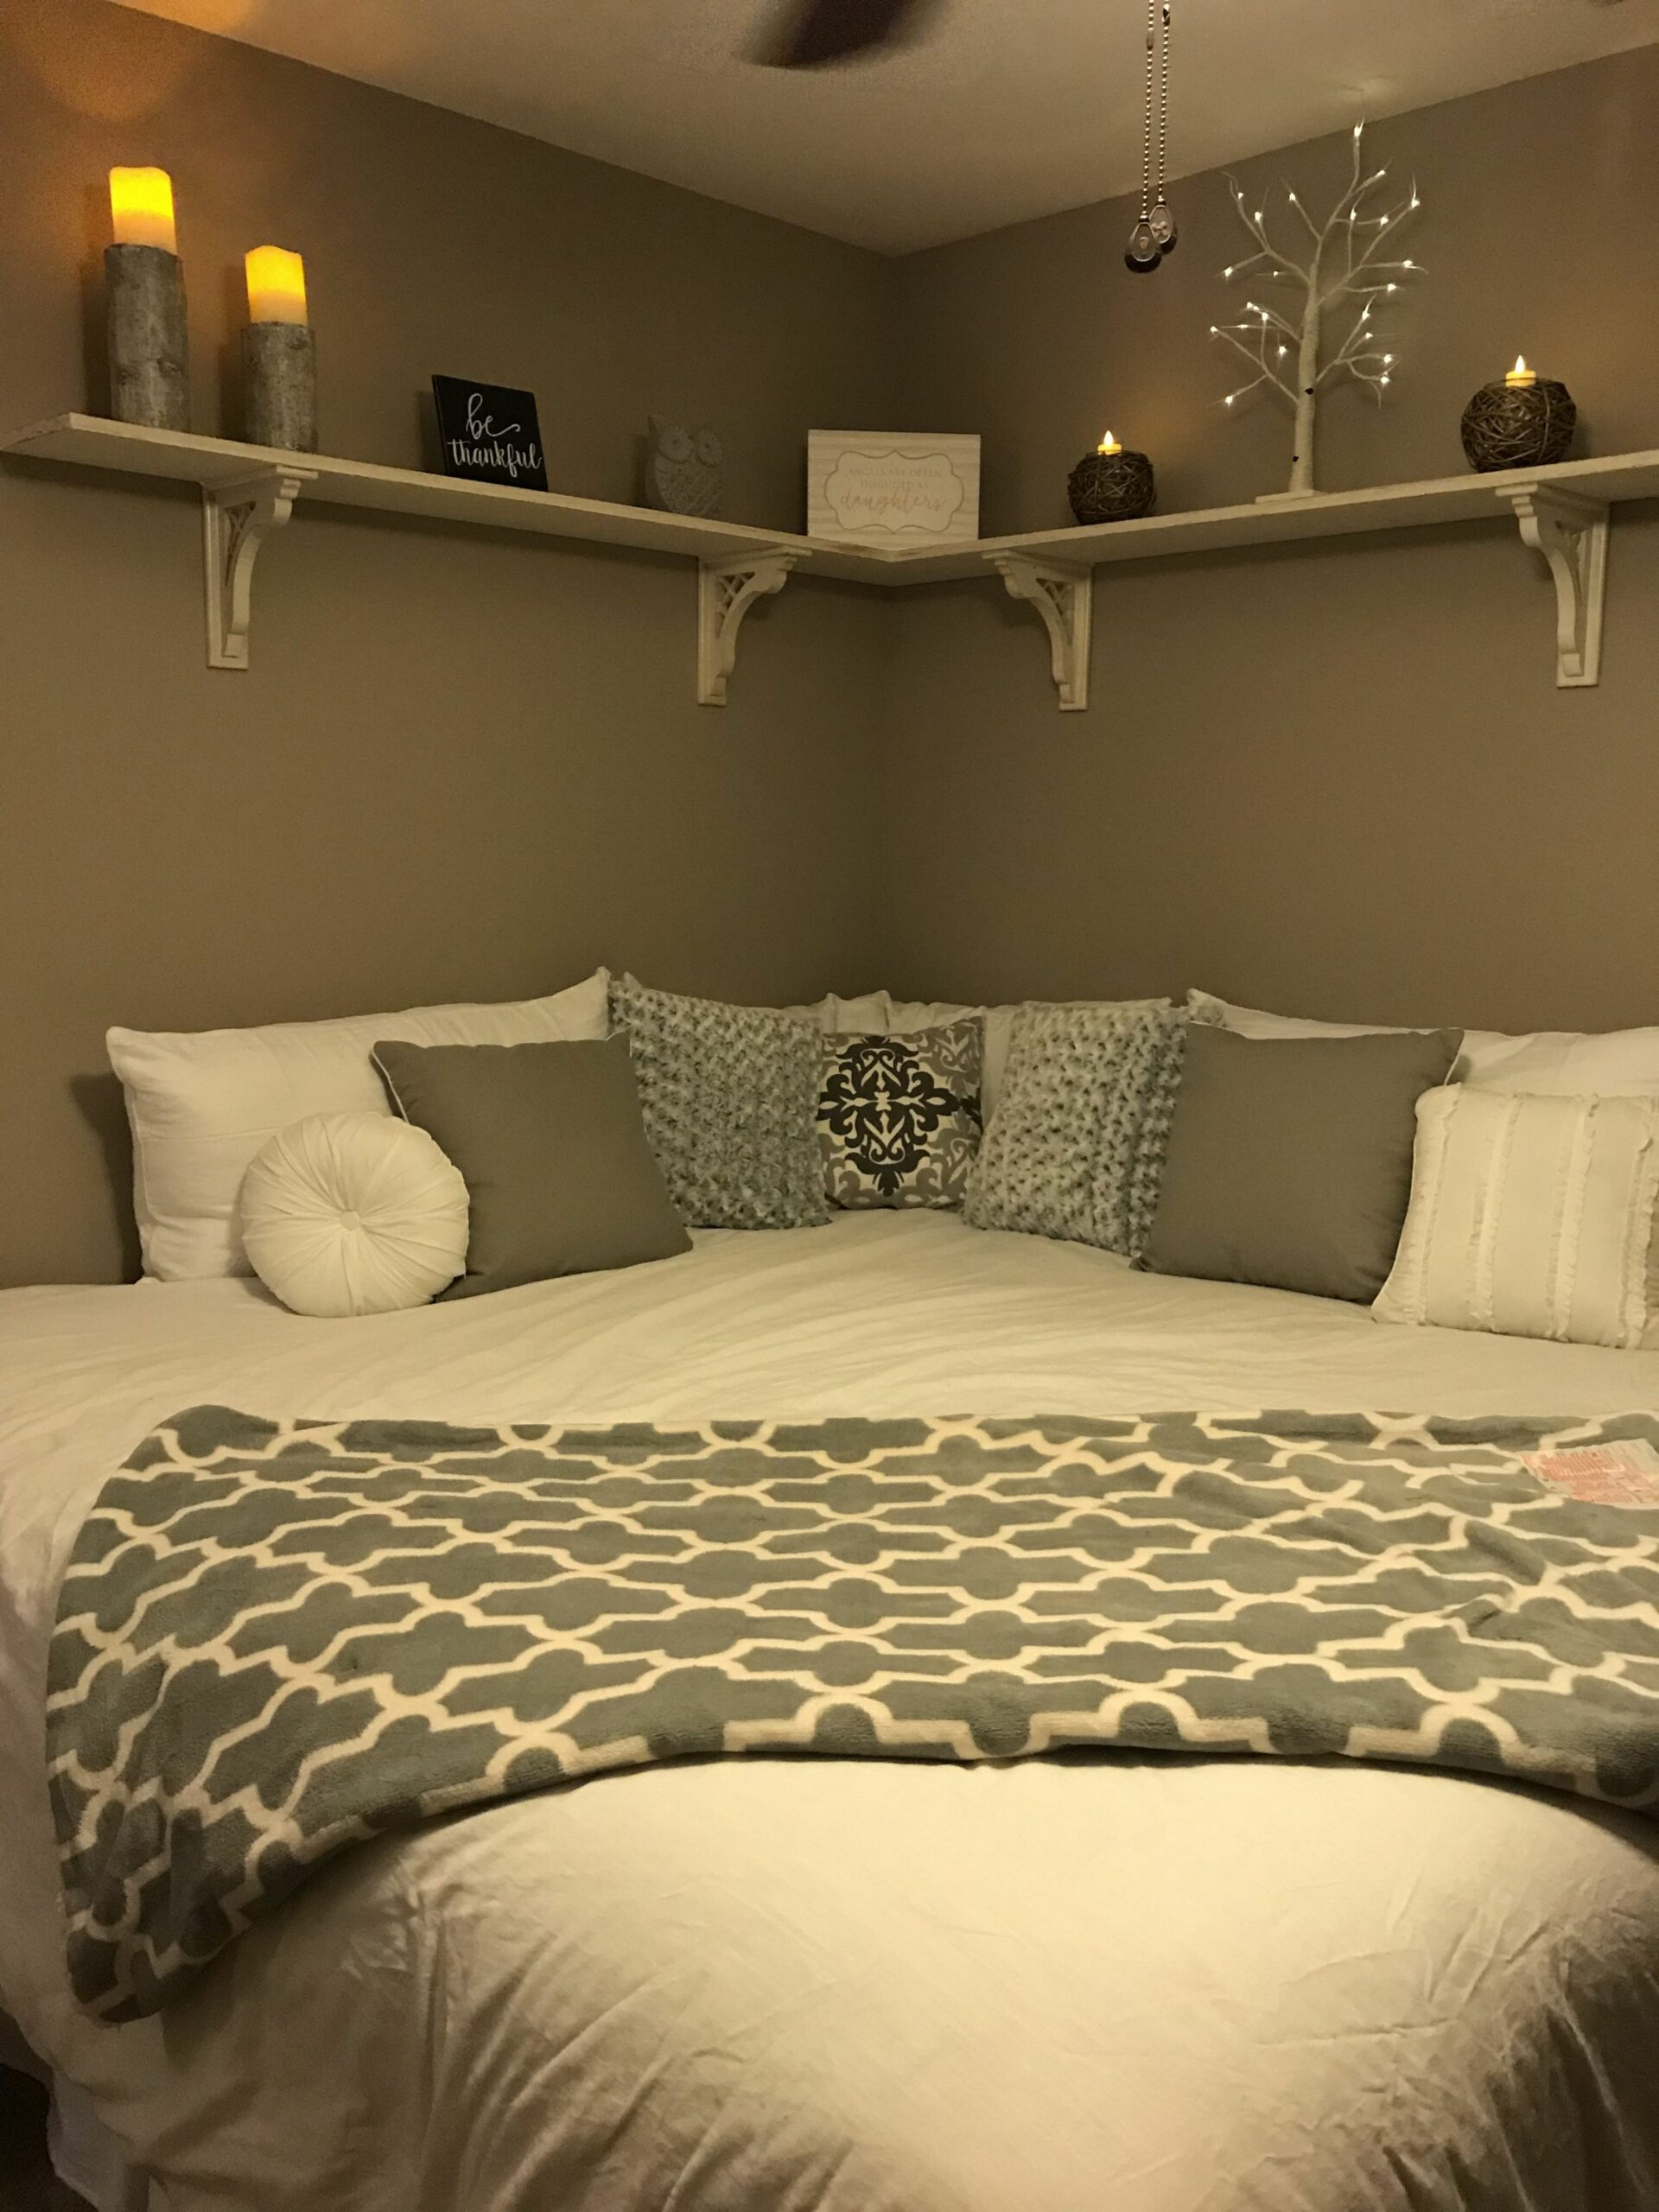 Moving bed to a corner and remove headboard and footboard ..